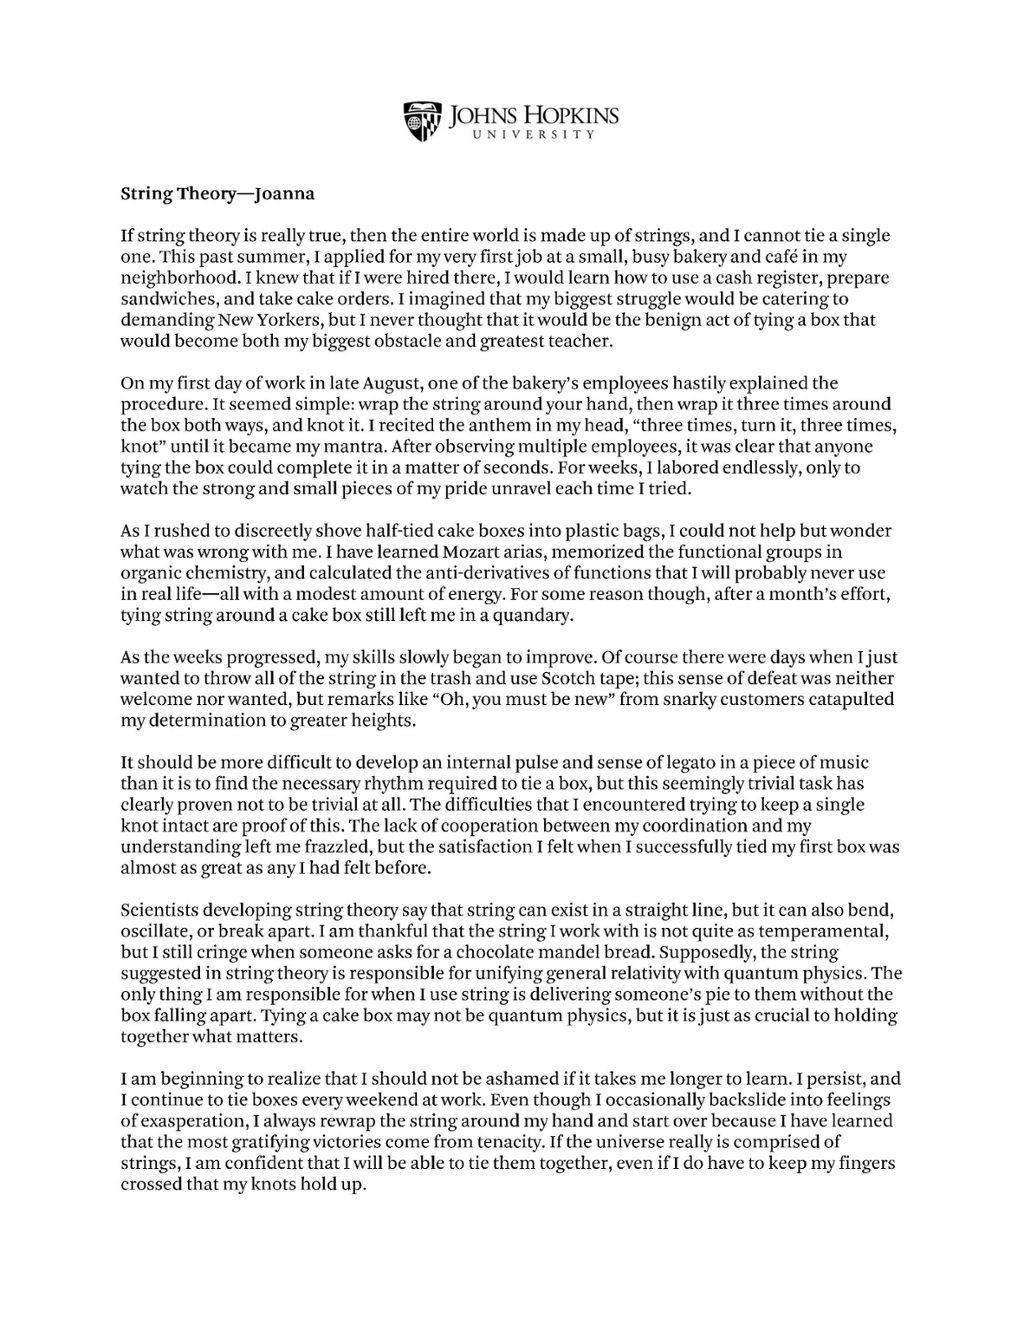 002 Essay Example College Requirements Outstanding Board 2017 Boston Sat Requirement Large